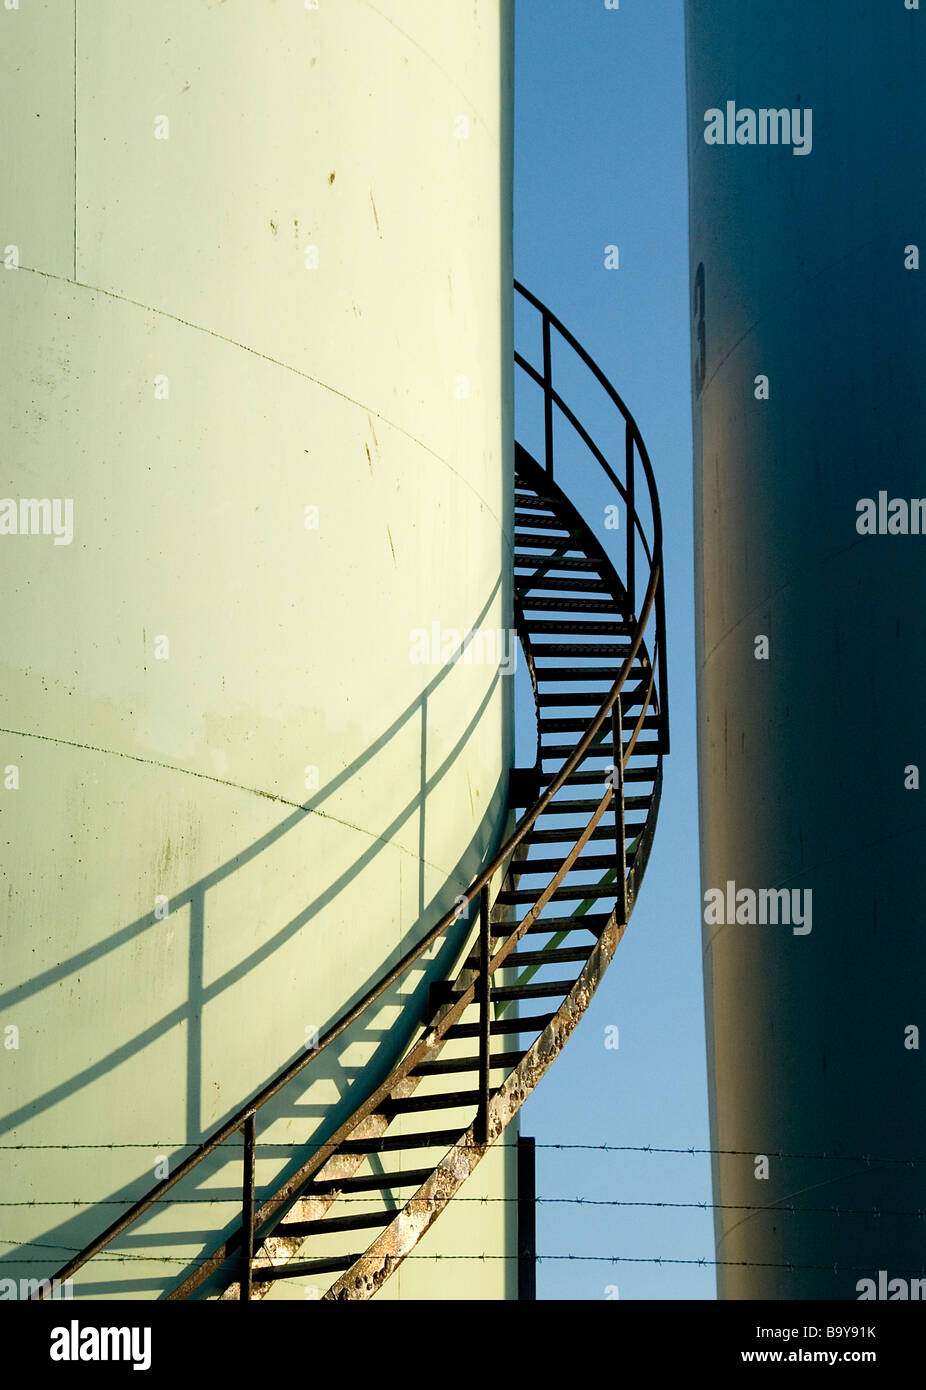 Old rusty curved metal stairway or spindel Stock Photo